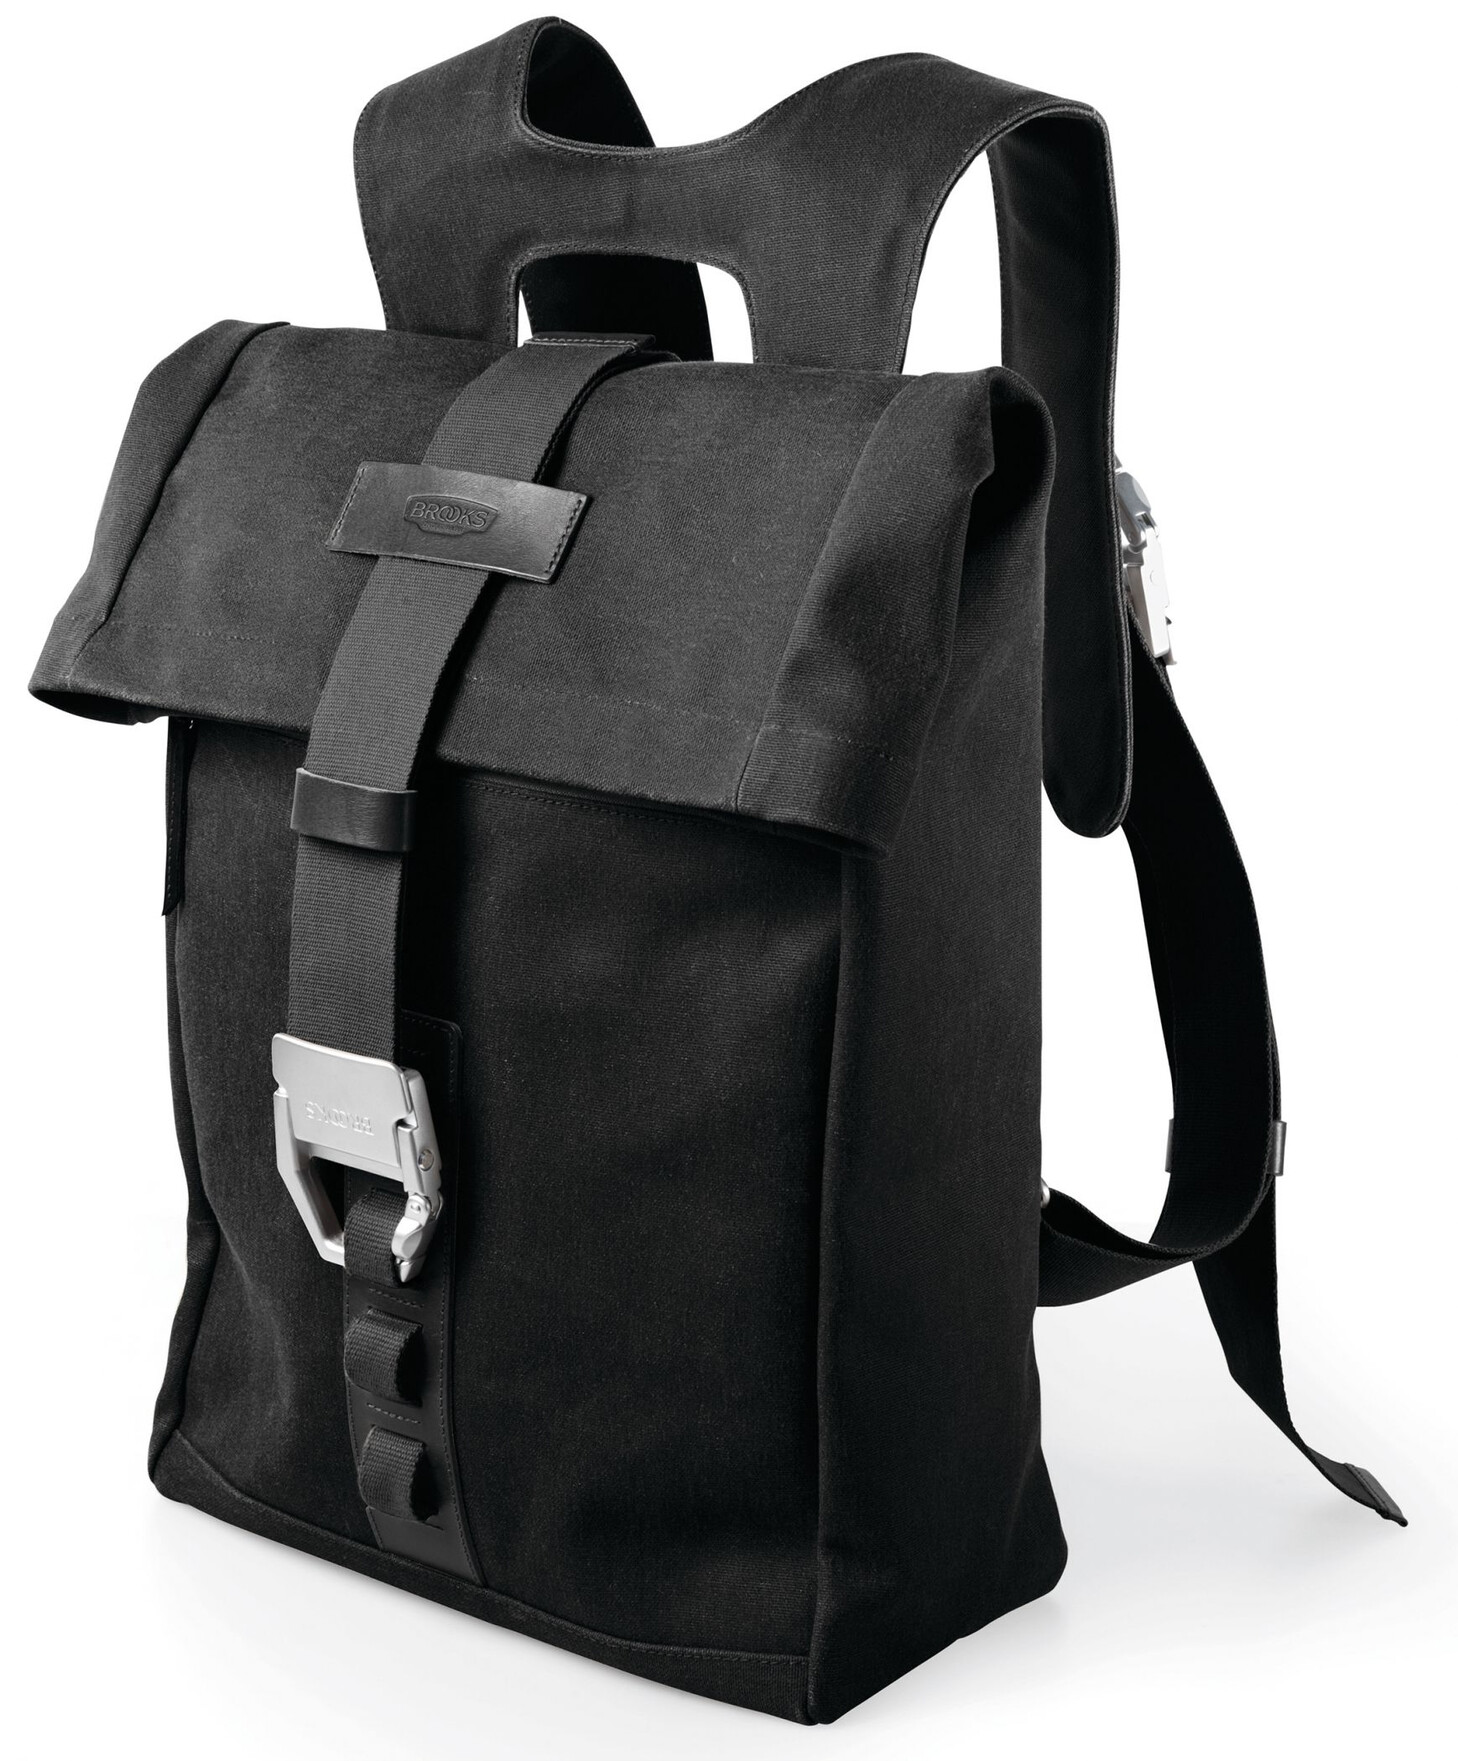 Brooks Islington Backpack Canvas 22-30 L, total black | Travel bags